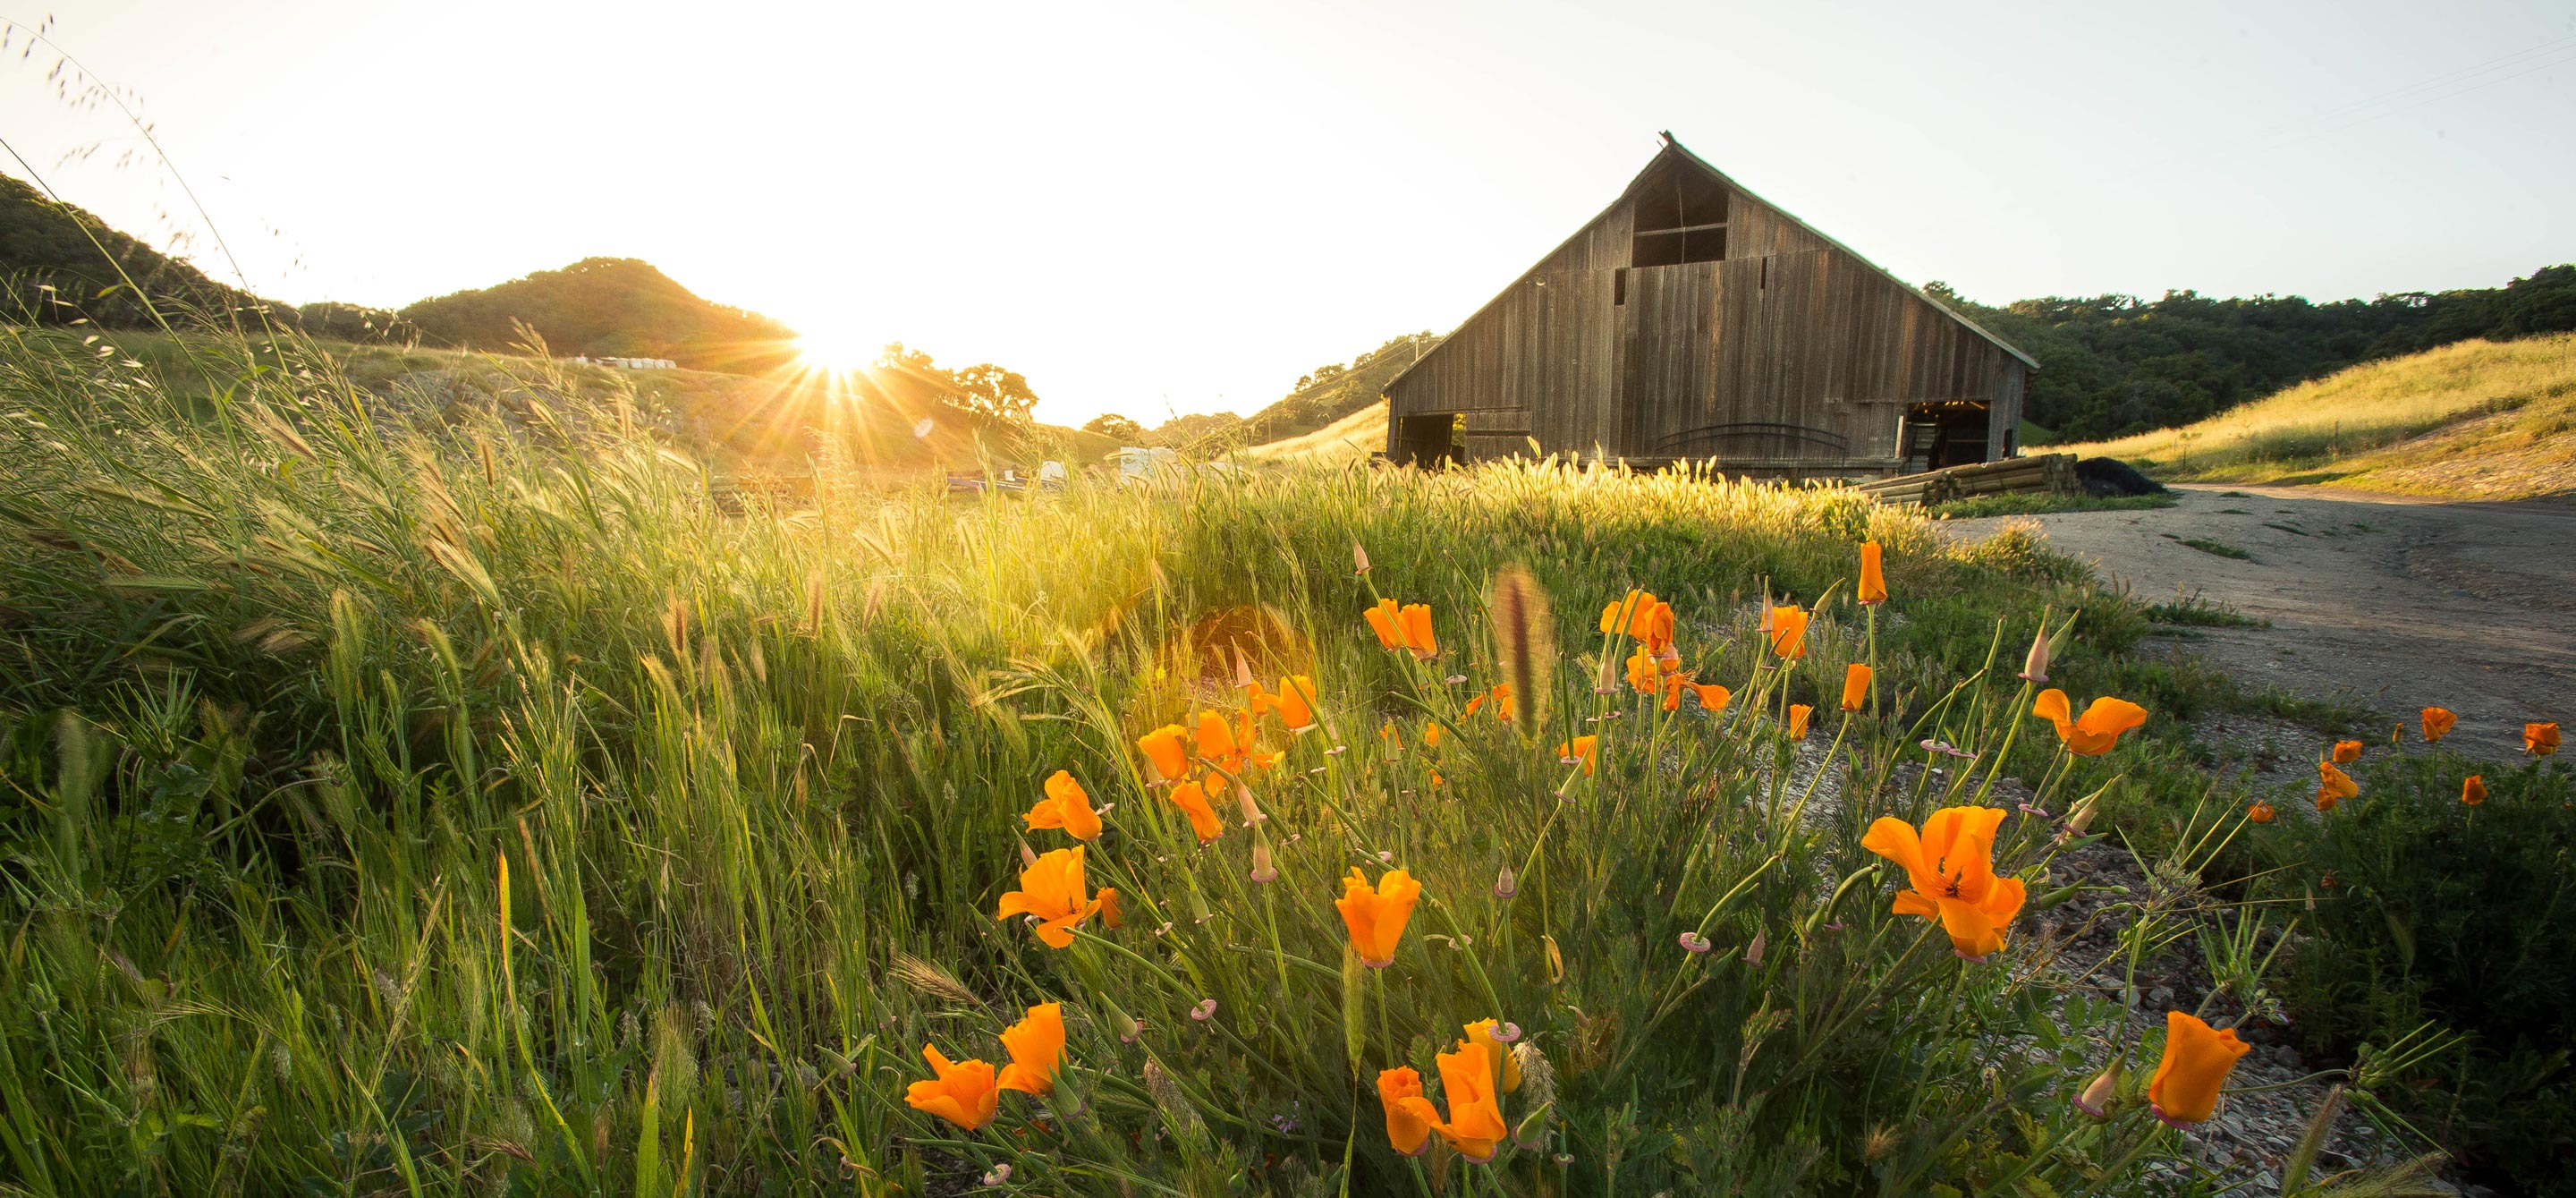 A field of poppies and an old barn during sunset